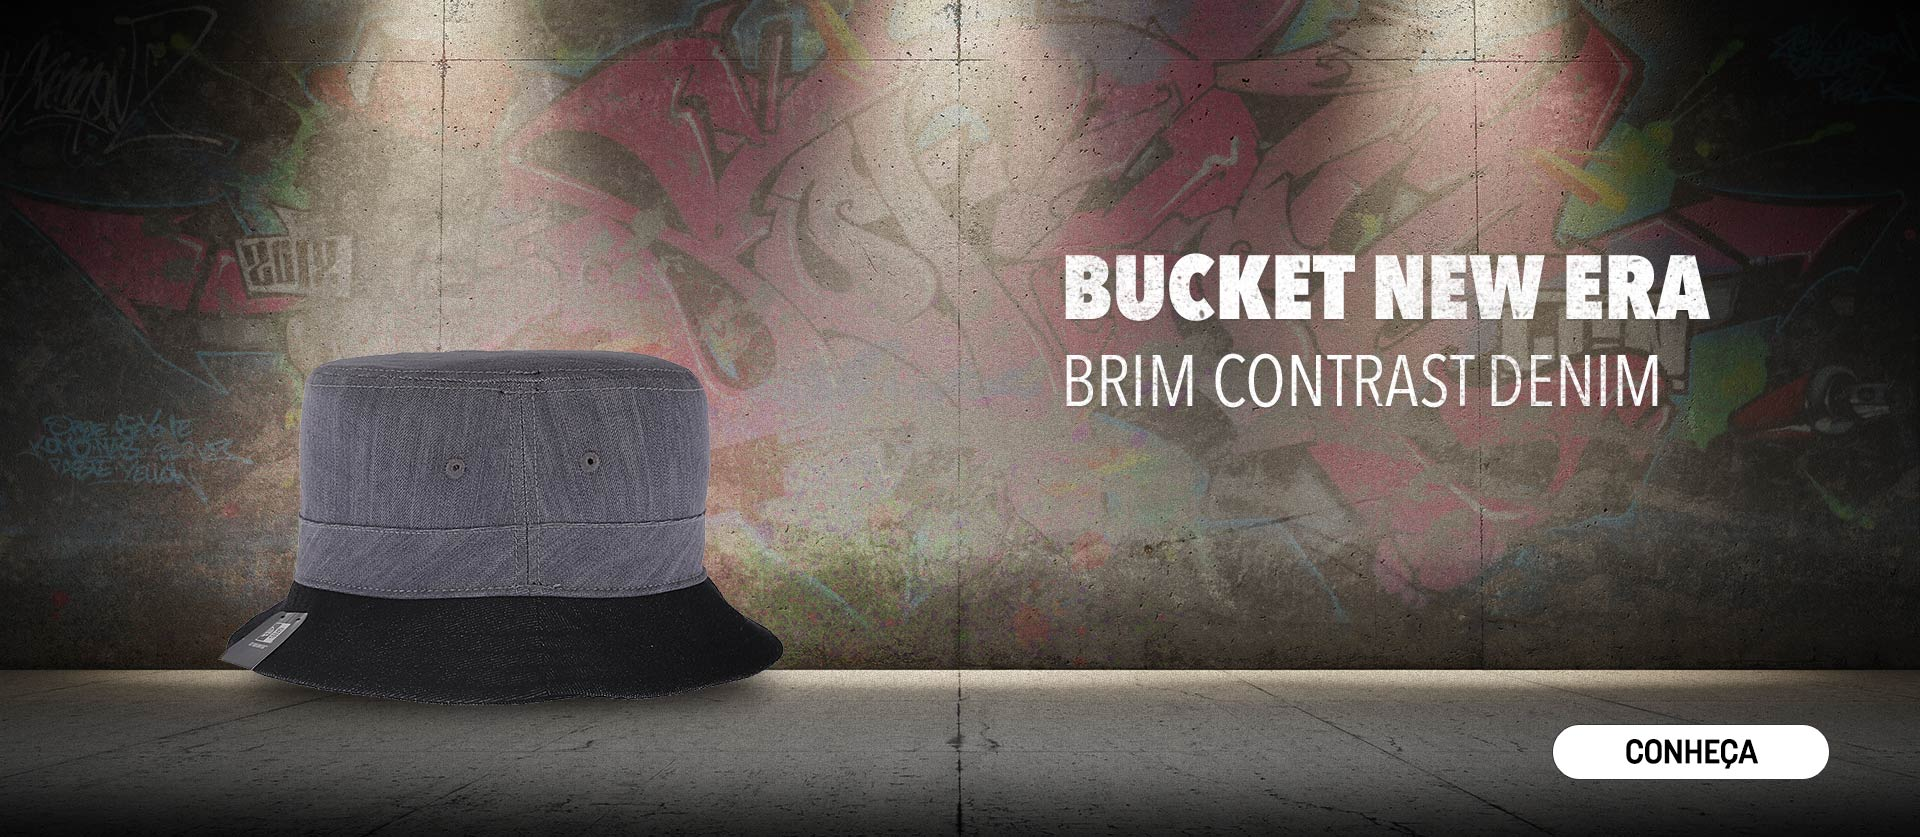 Bucket New Era Brim Contrast Denim